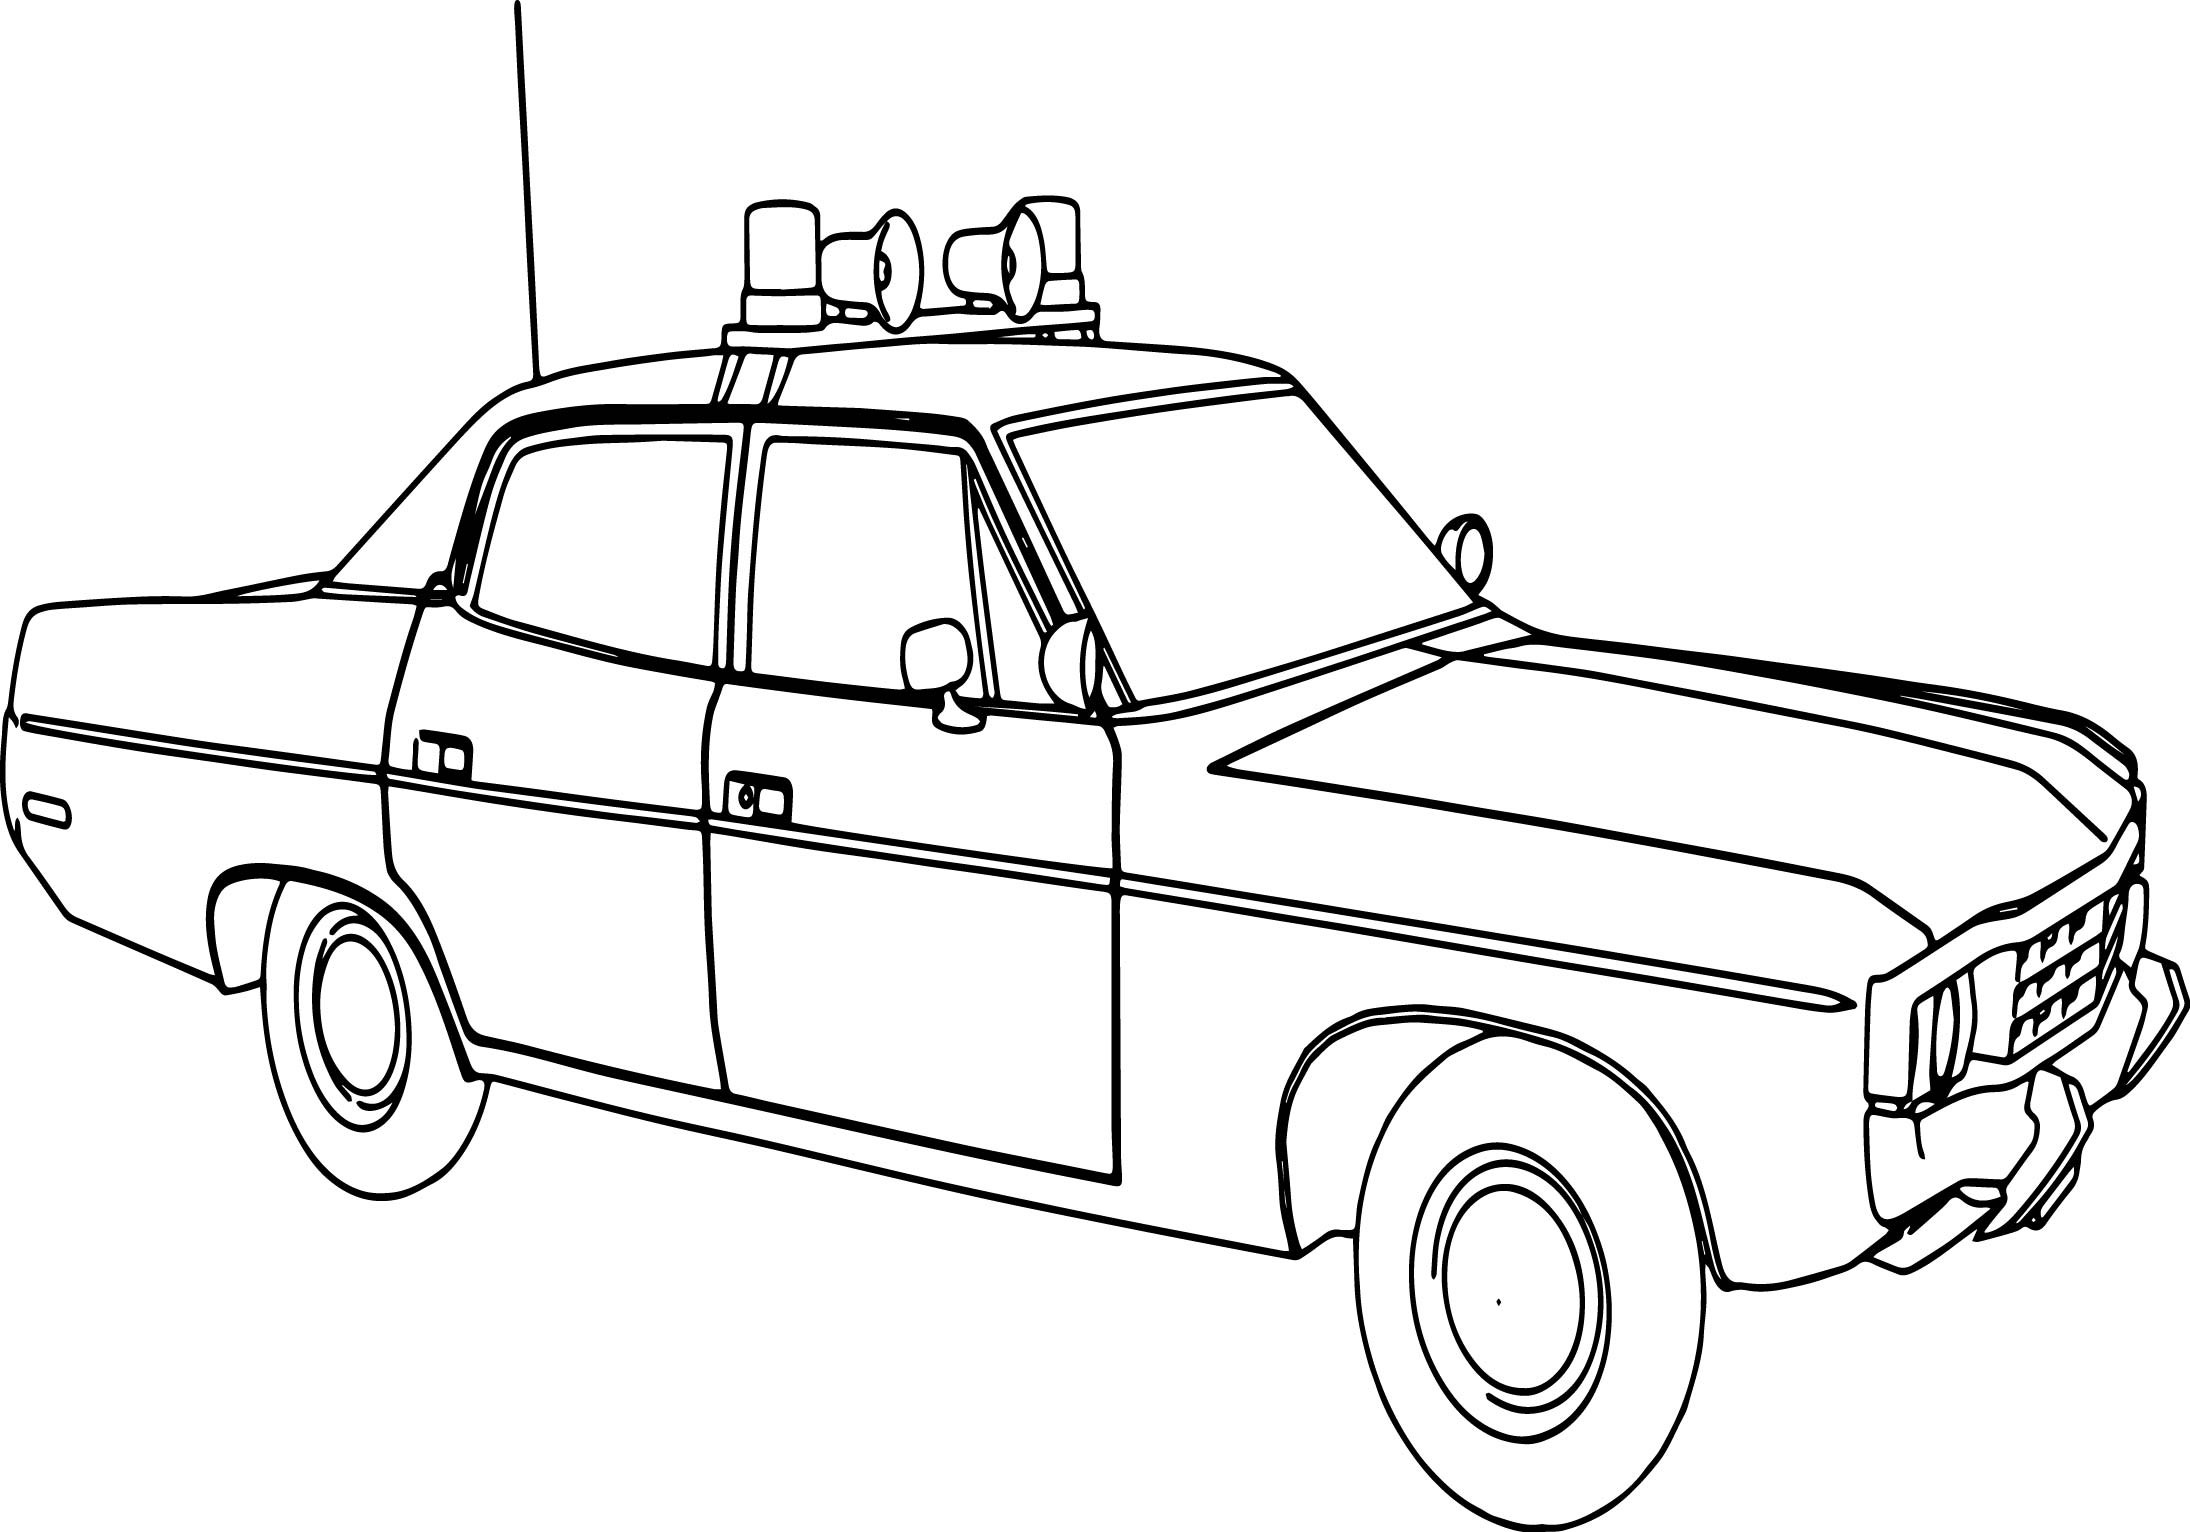 2190x1532 Sheriff Cars Coloring Pages Best Of Abc Matador Sheriff Police Car